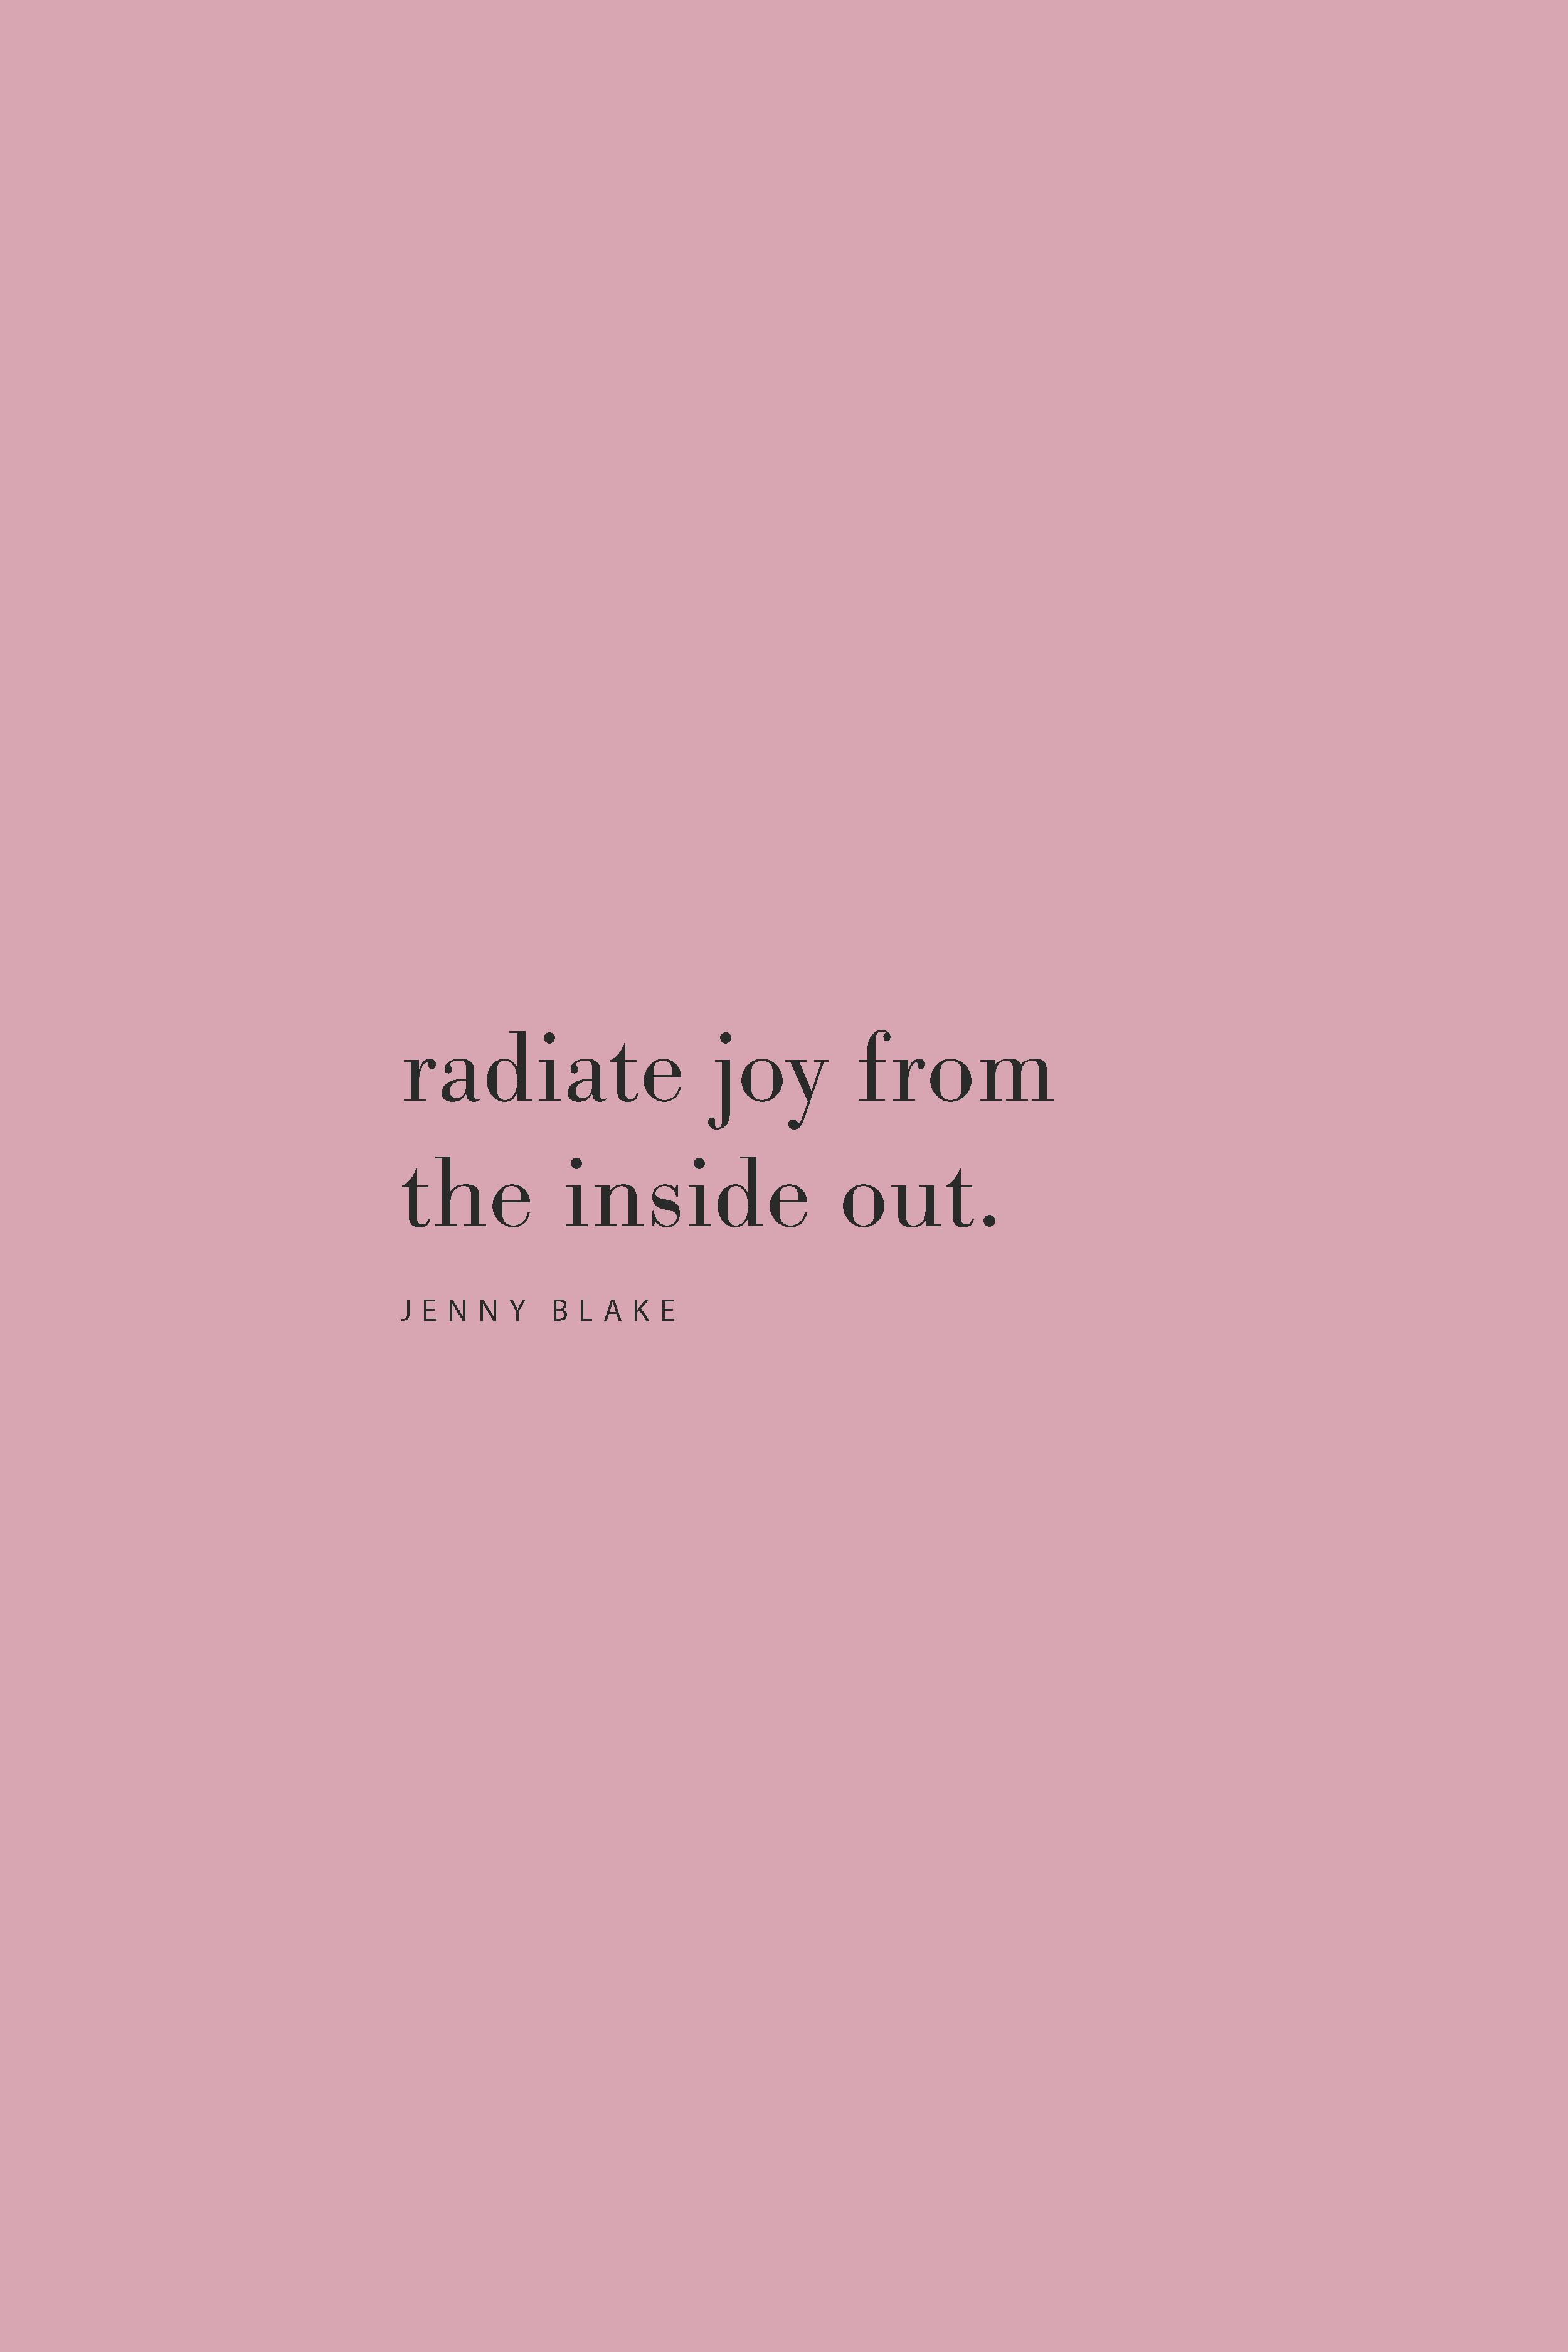 Quote from Jenny Blake on the Feel Good Effect Podcast on radiating joy. #realfoodwholelife #feelgoodeffect #podcast #resilience #joy